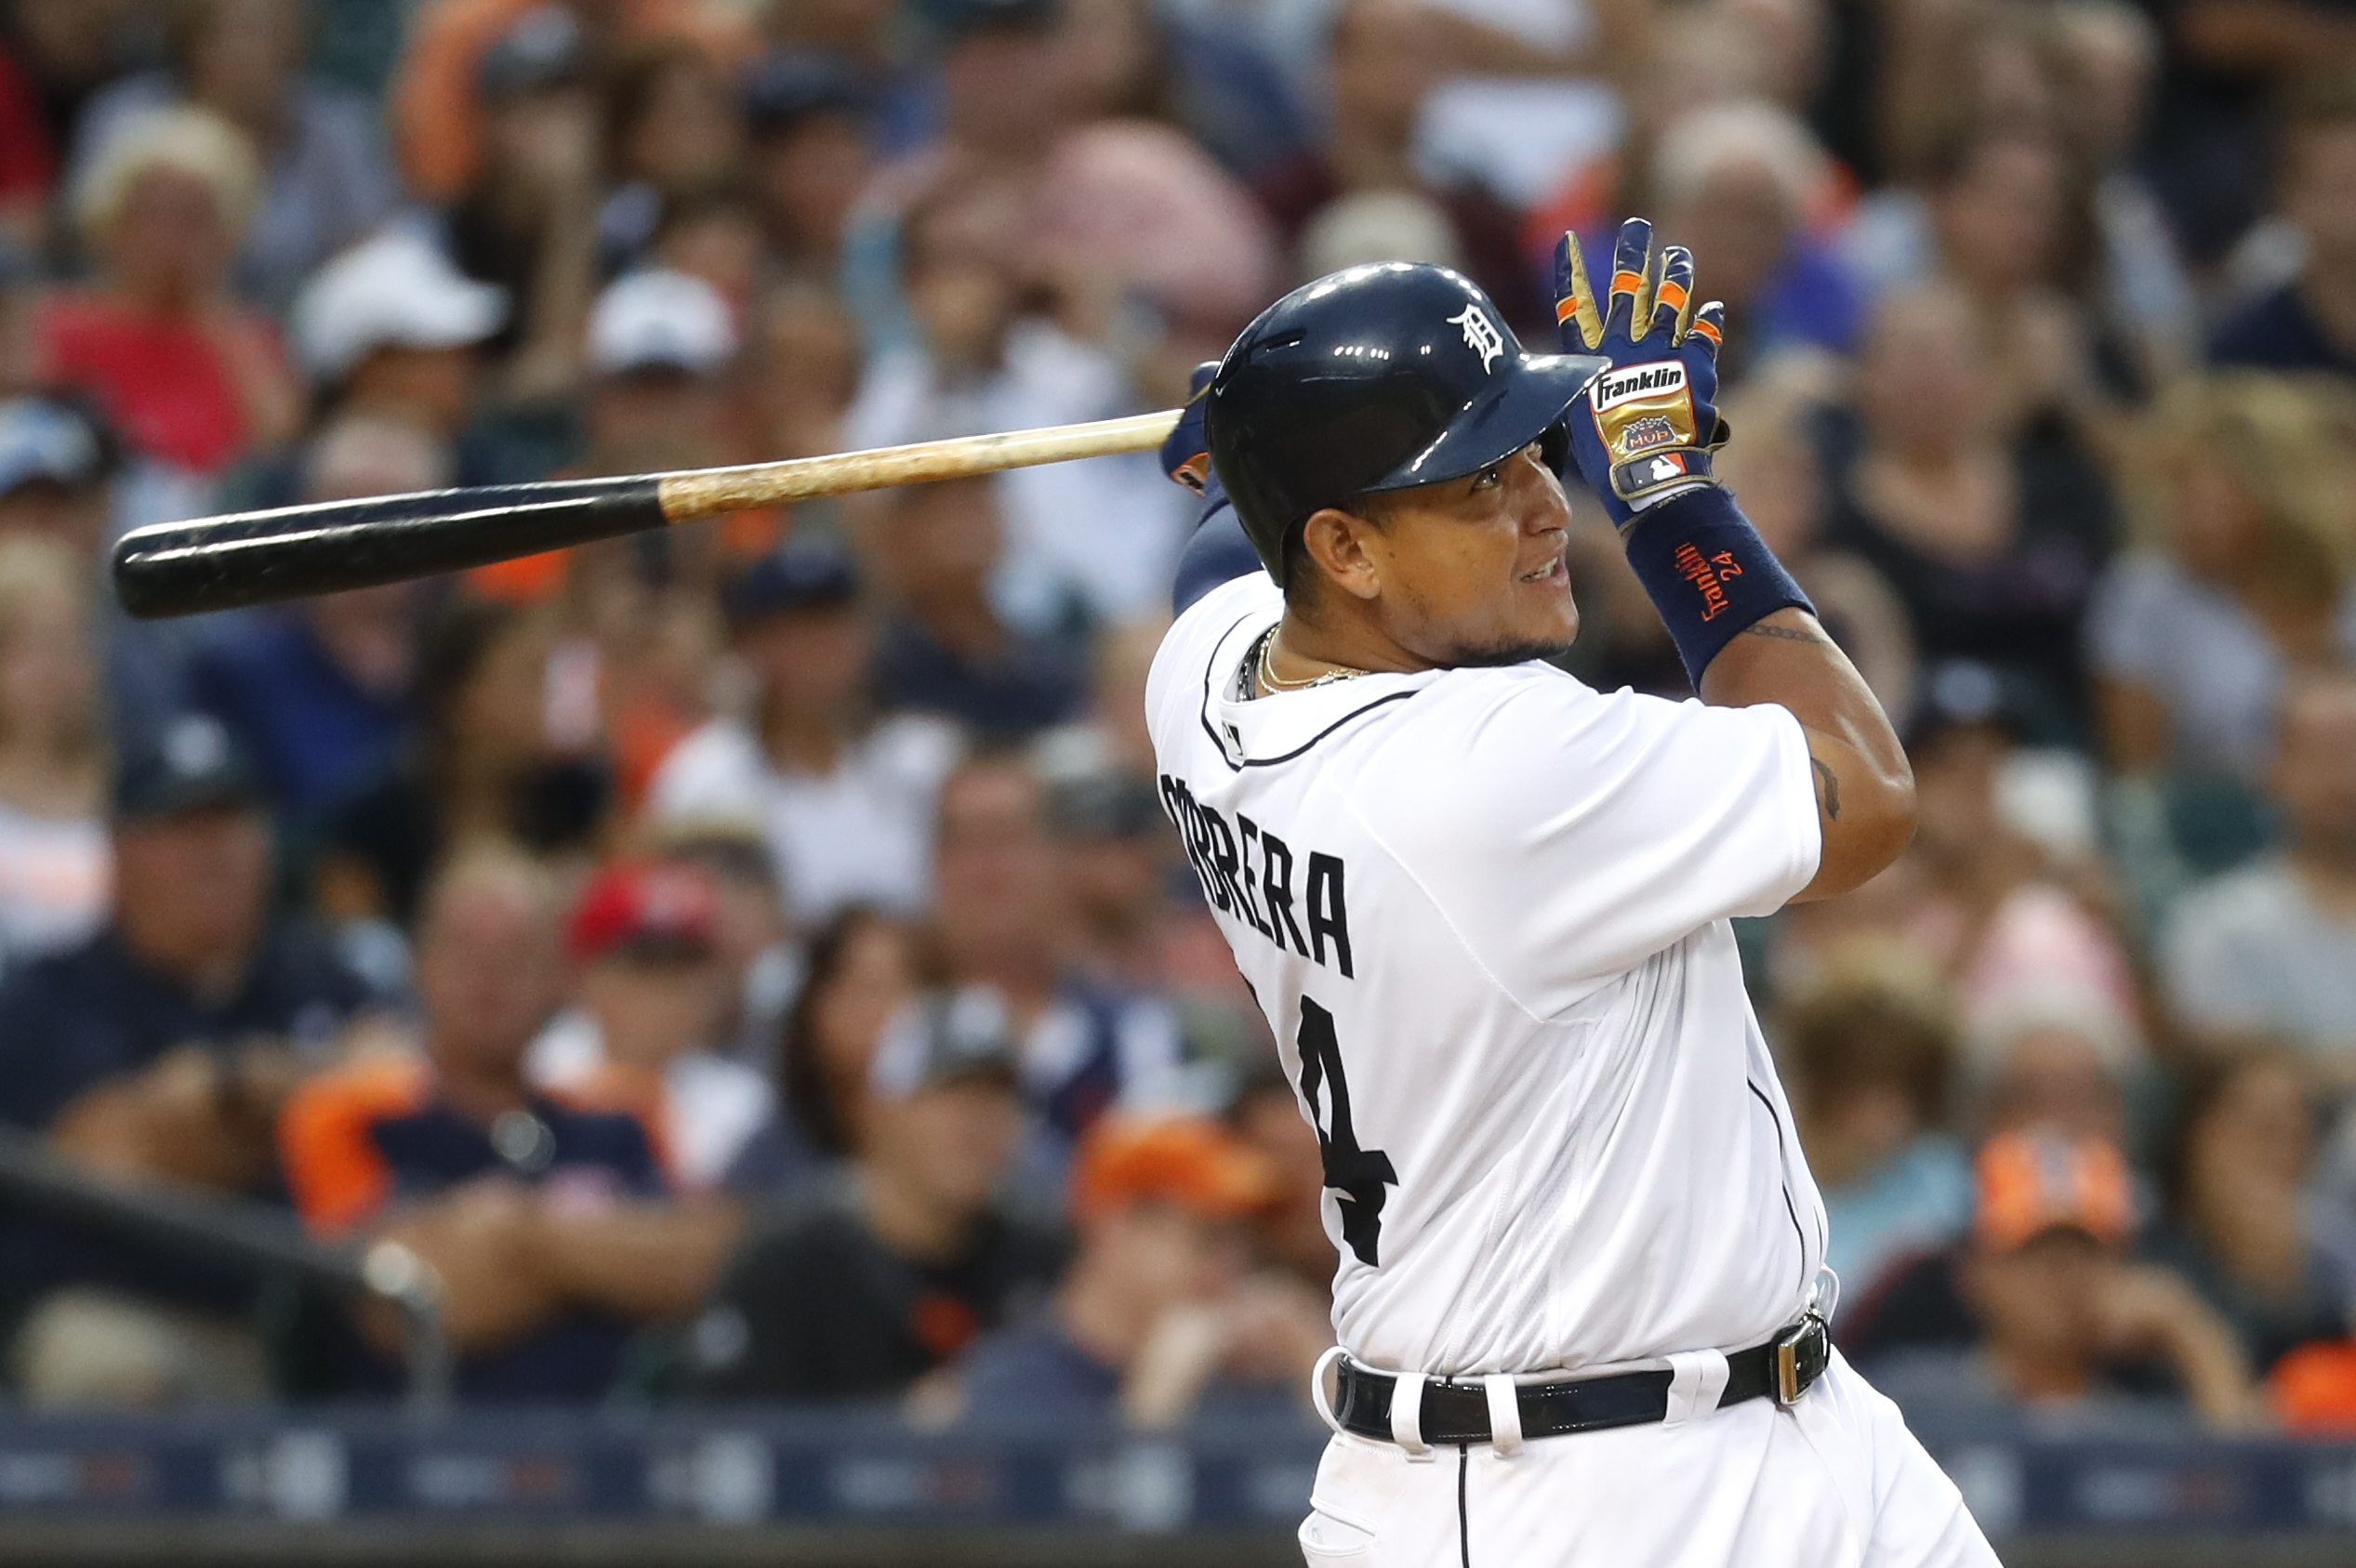 Detroit Tigers' Miguel Cabrera watches his fly ball to center field against the Kansas City Royals in the fourth inning of a baseball game, Monday, Aug. 15, 2016 in Detroit. Cabrera left the game after the flyout on the play. (AP Photo/Paul Sancya)